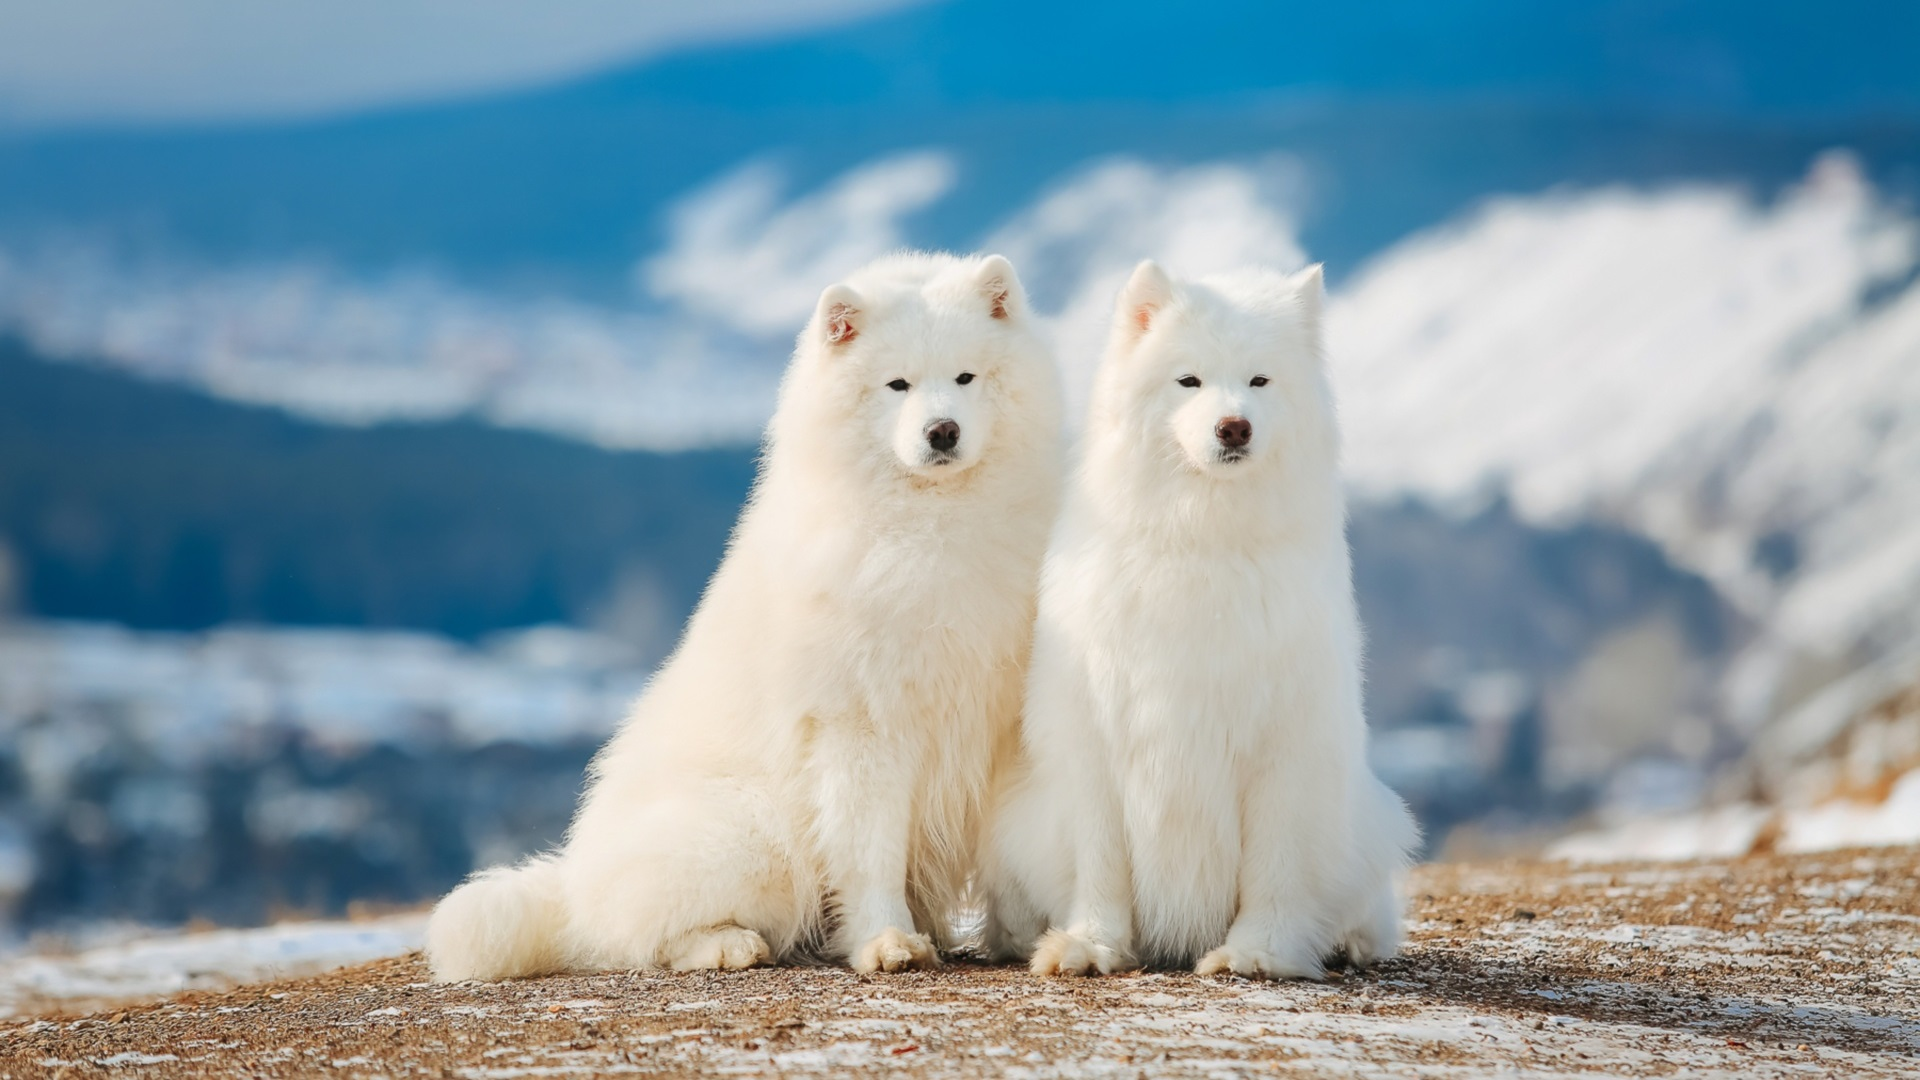 Wallpaper Two Samoyed Dogs 1920x1200 Hd Picture Image